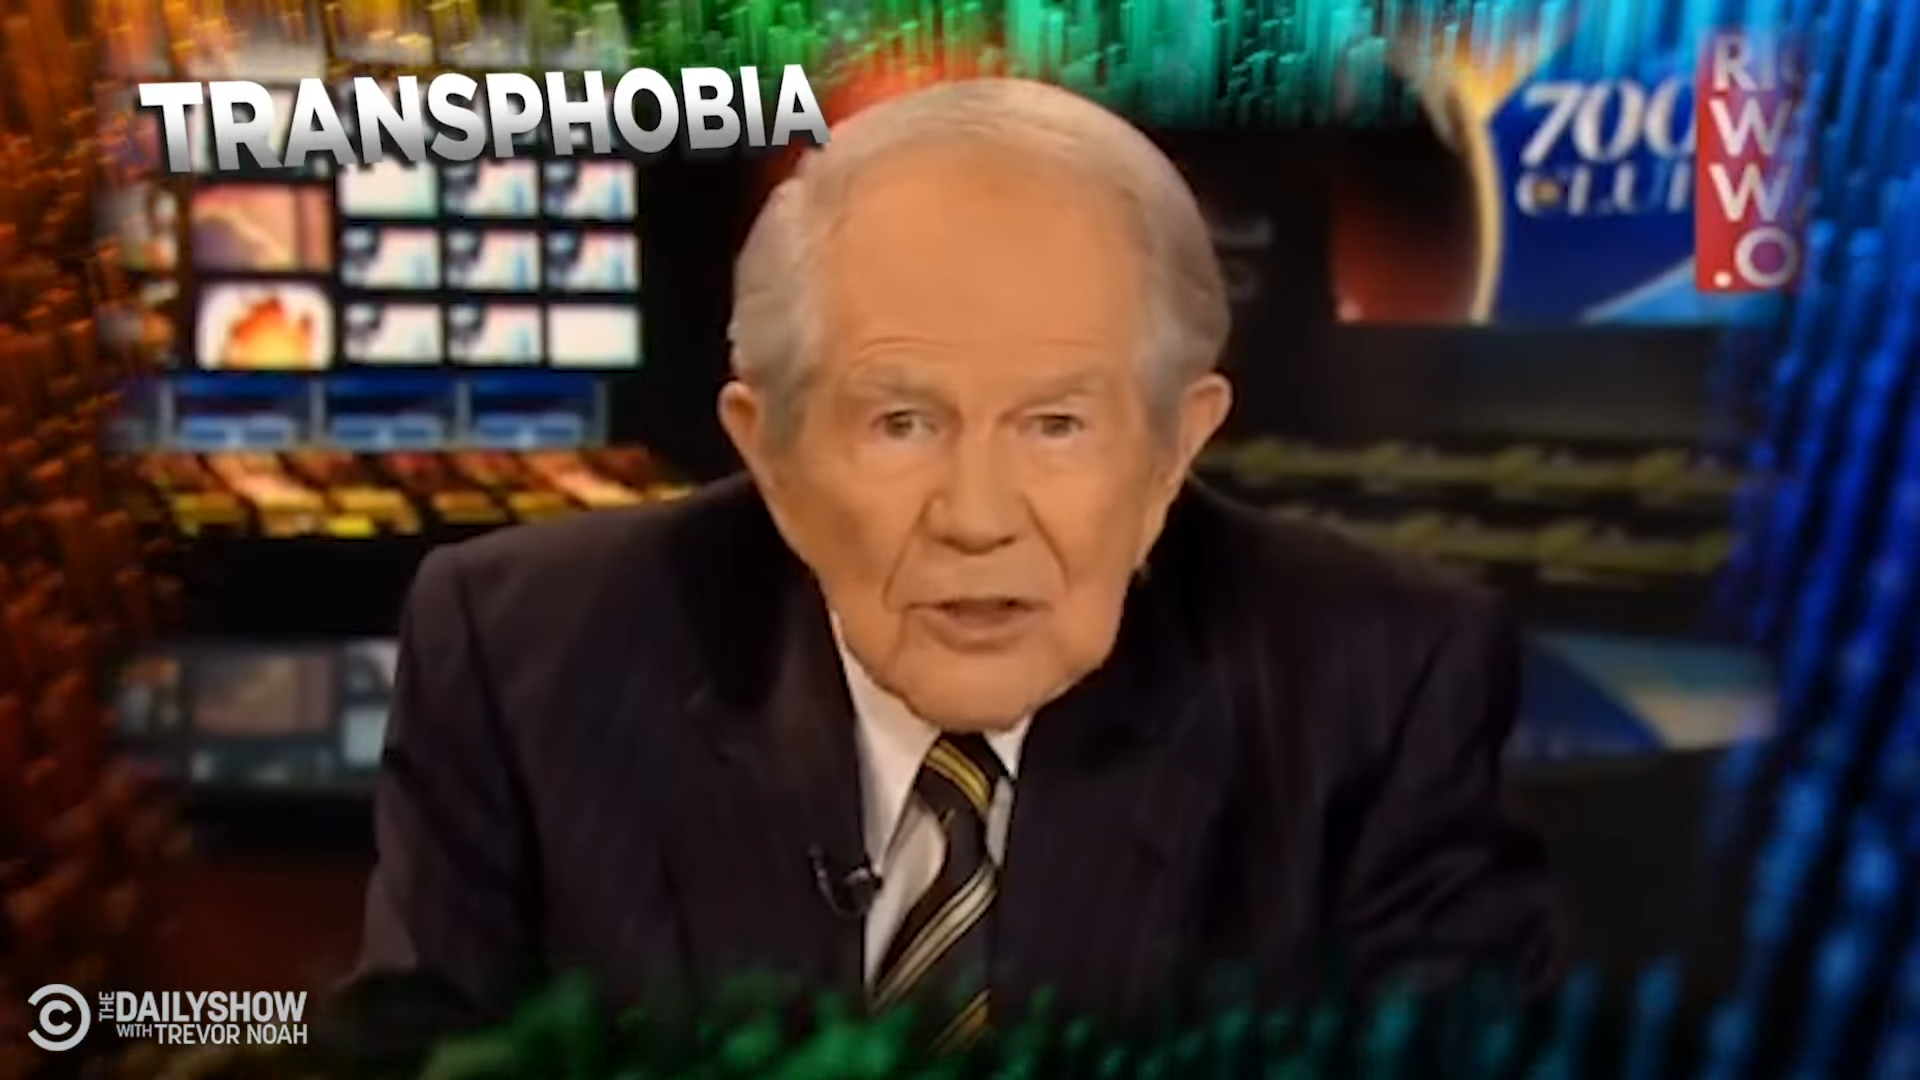 The Daily Show roasts Pat Robertson in tribute to televangelist's worst ramblings